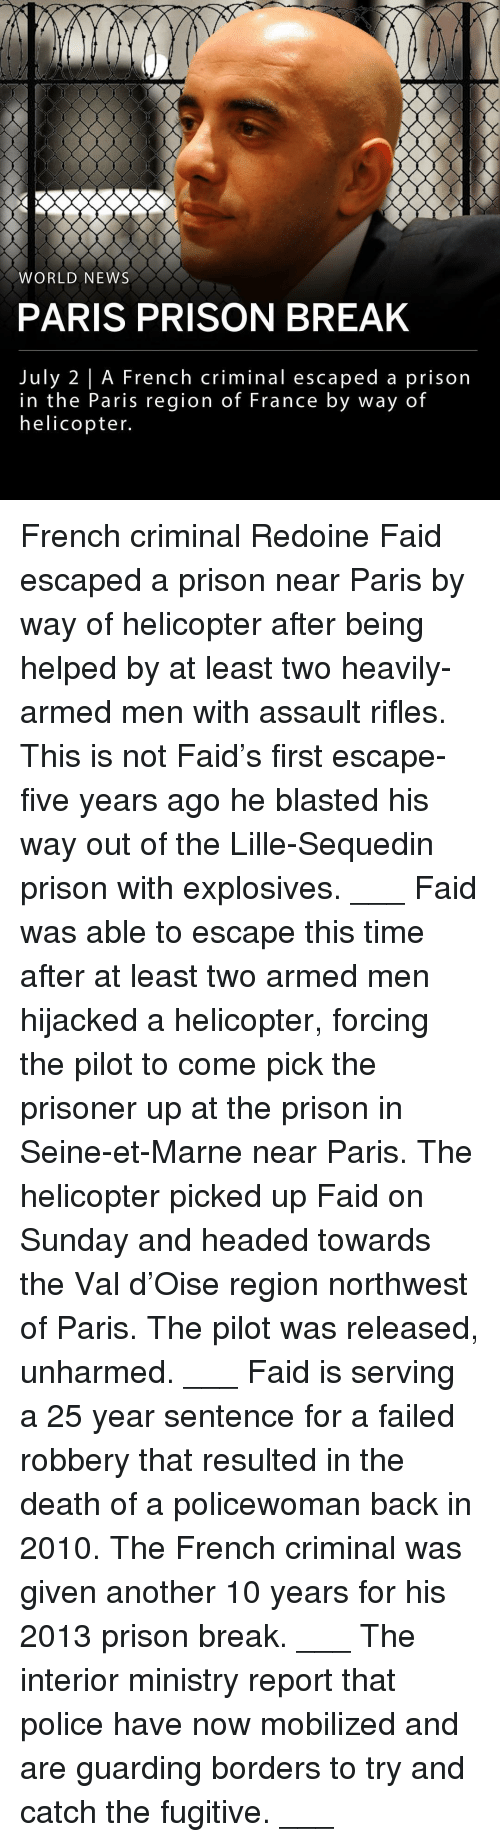 Assault Rifles: WORLD NEWS  PARIS PRISON BREAK  July 2 | A French criminal escaped a prison  in the Paris region of France by way of  helicopter. French criminal Redoine Faid escaped a prison near Paris by way of helicopter after being helped by at least two heavily-armed men with assault rifles. This is not Faid's first escape- five years ago he blasted his way out of the Lille-Sequedin prison with explosives. ___ Faid was able to escape this time after at least two armed men hijacked a helicopter, forcing the pilot to come pick the prisoner up at the prison in Seine-et-Marne near Paris. The helicopter picked up Faid on Sunday and headed towards the Val d'Oise region northwest of Paris. The pilot was released, unharmed. ___ Faid is serving a 25 year sentence for a failed robbery that resulted in the death of a policewoman back in 2010. The French criminal was given another 10 years for his 2013 prison break. ___ The interior ministry report that police have now mobilized and are guarding borders to try and catch the fugitive. ___